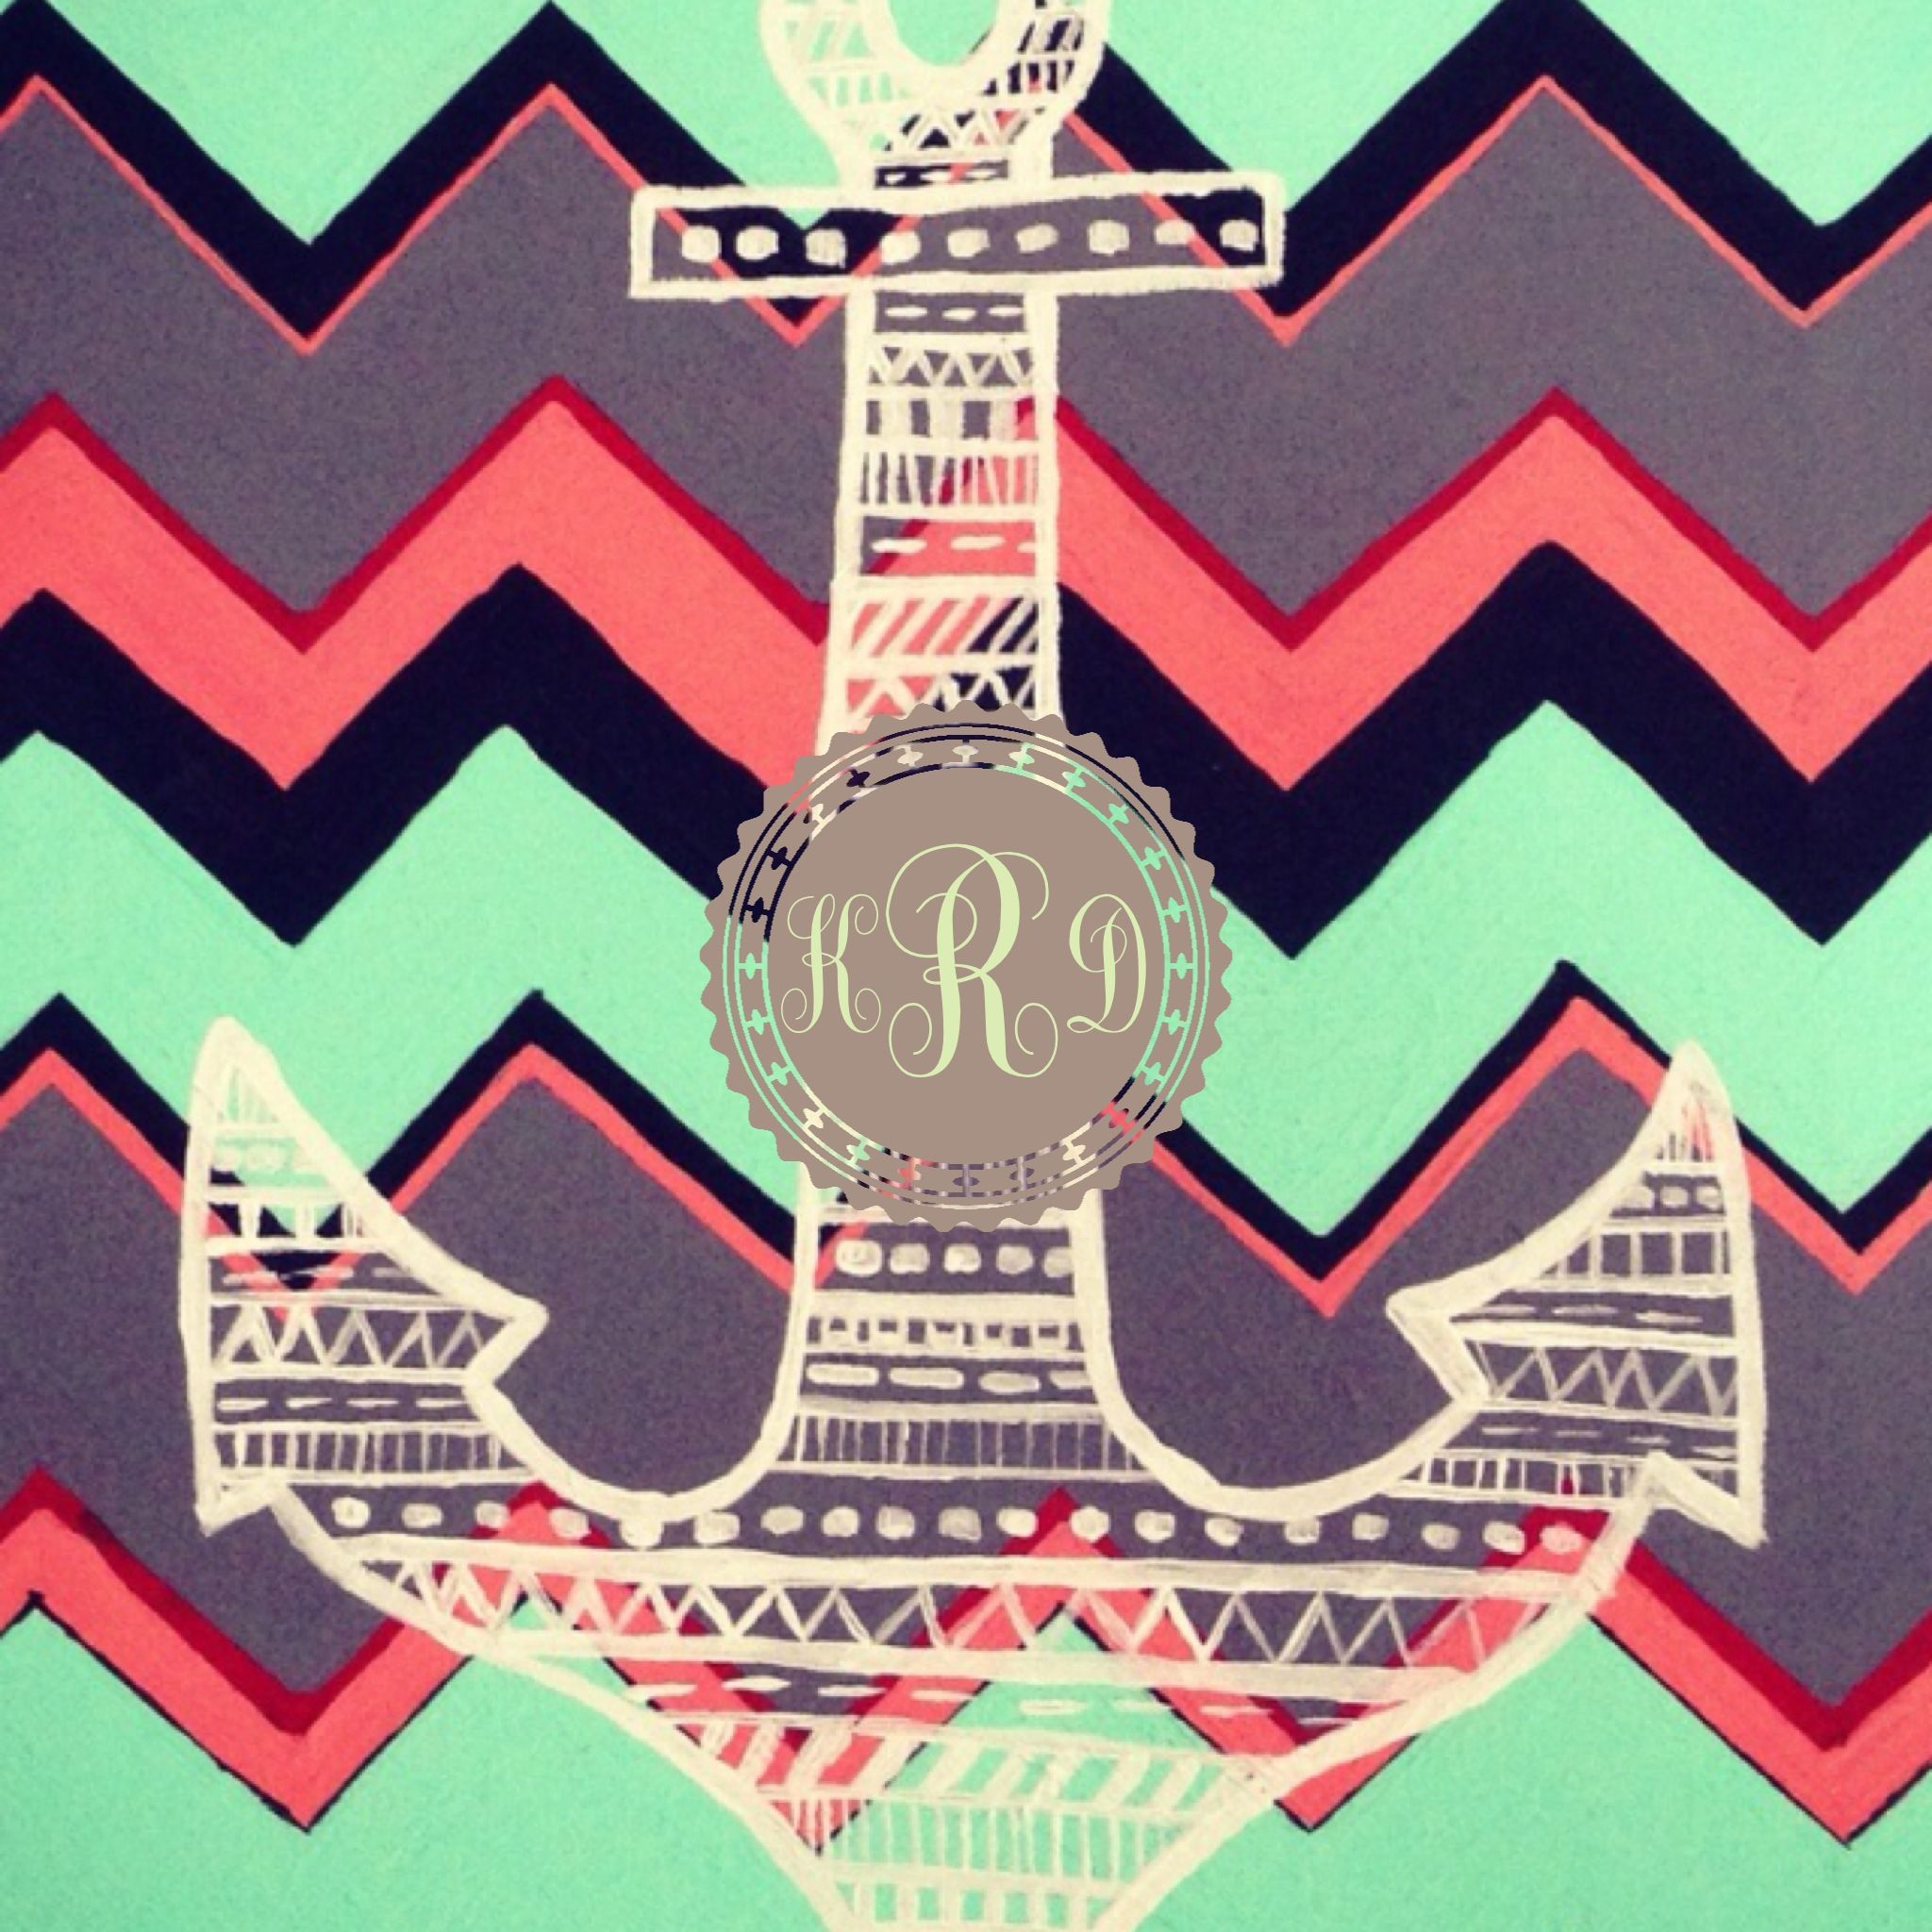 monogram custom wallpaper app found at the app store for iphones